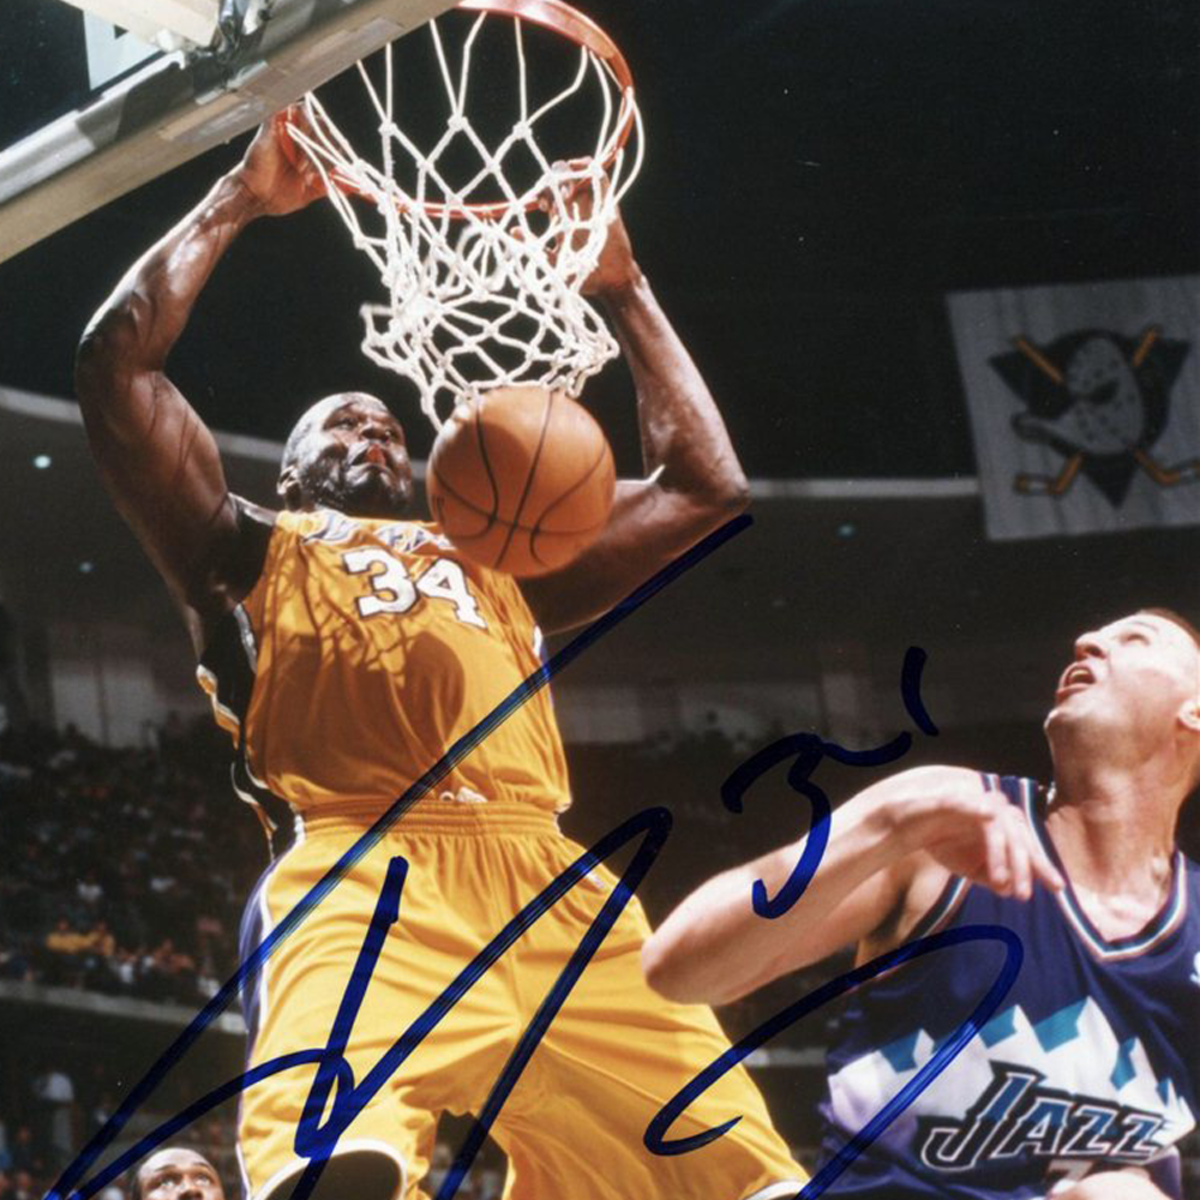 Shaquille O'neal's power dunk.